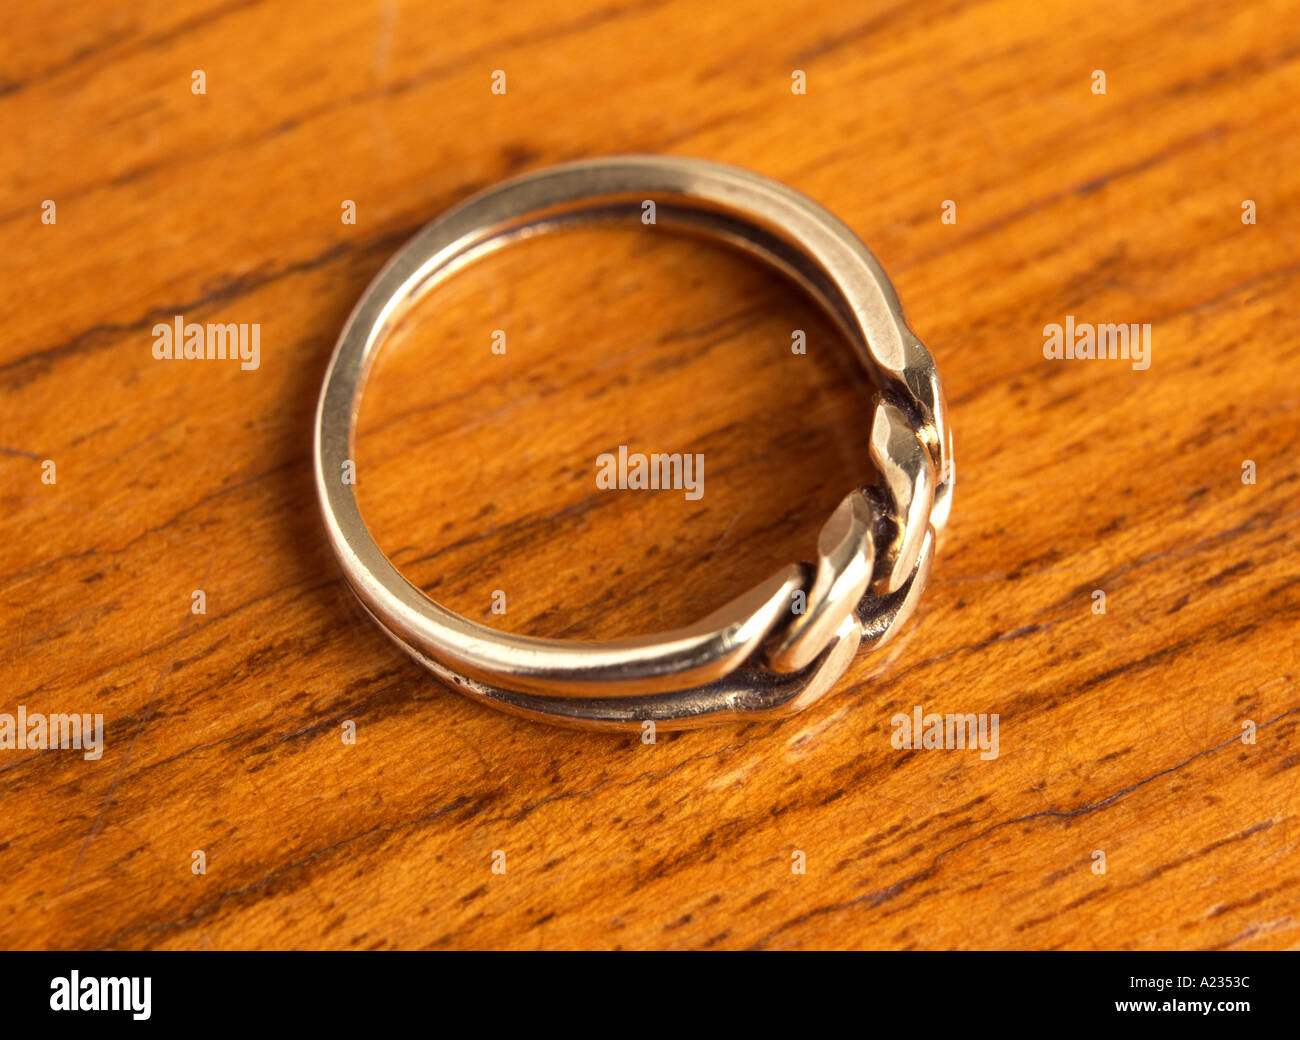 a gold ring - Stock Image